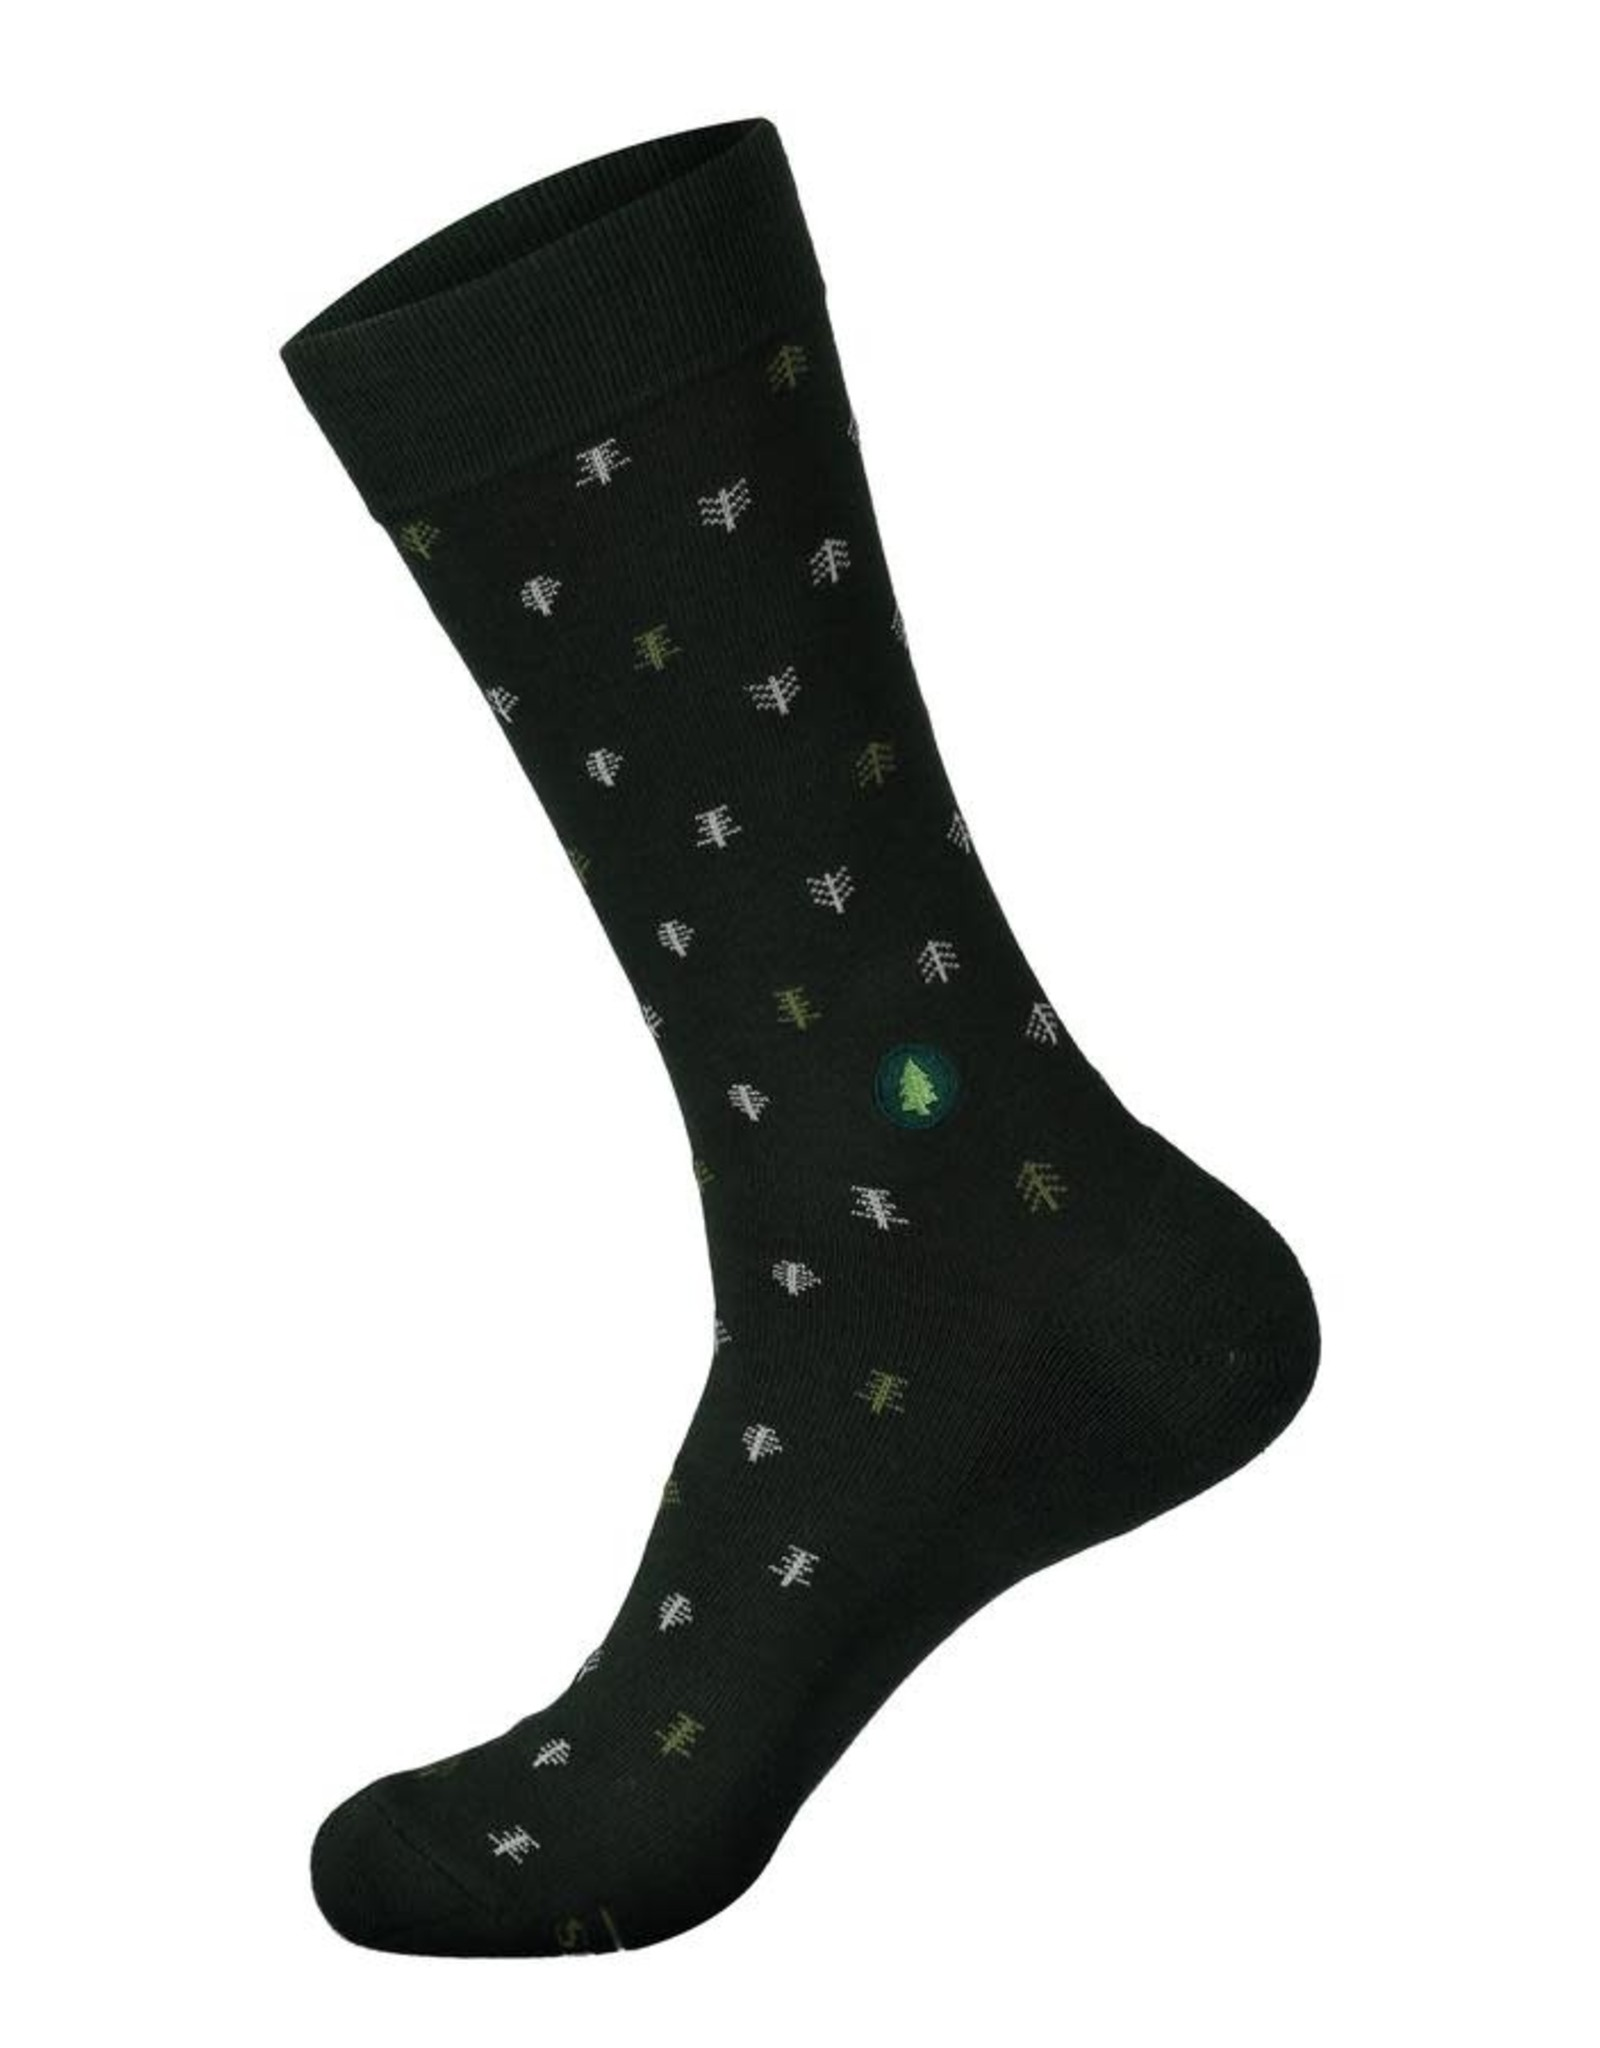 Conscious Step Socks that Plant Trees (Small) - India